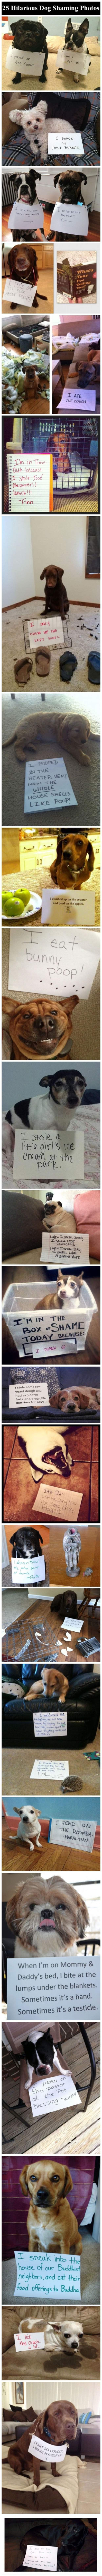 25 Hilarious Dog Shaming Photos Pictures, Photos, and Images for Facebook, Tumblr, Pinterest, and Twitter